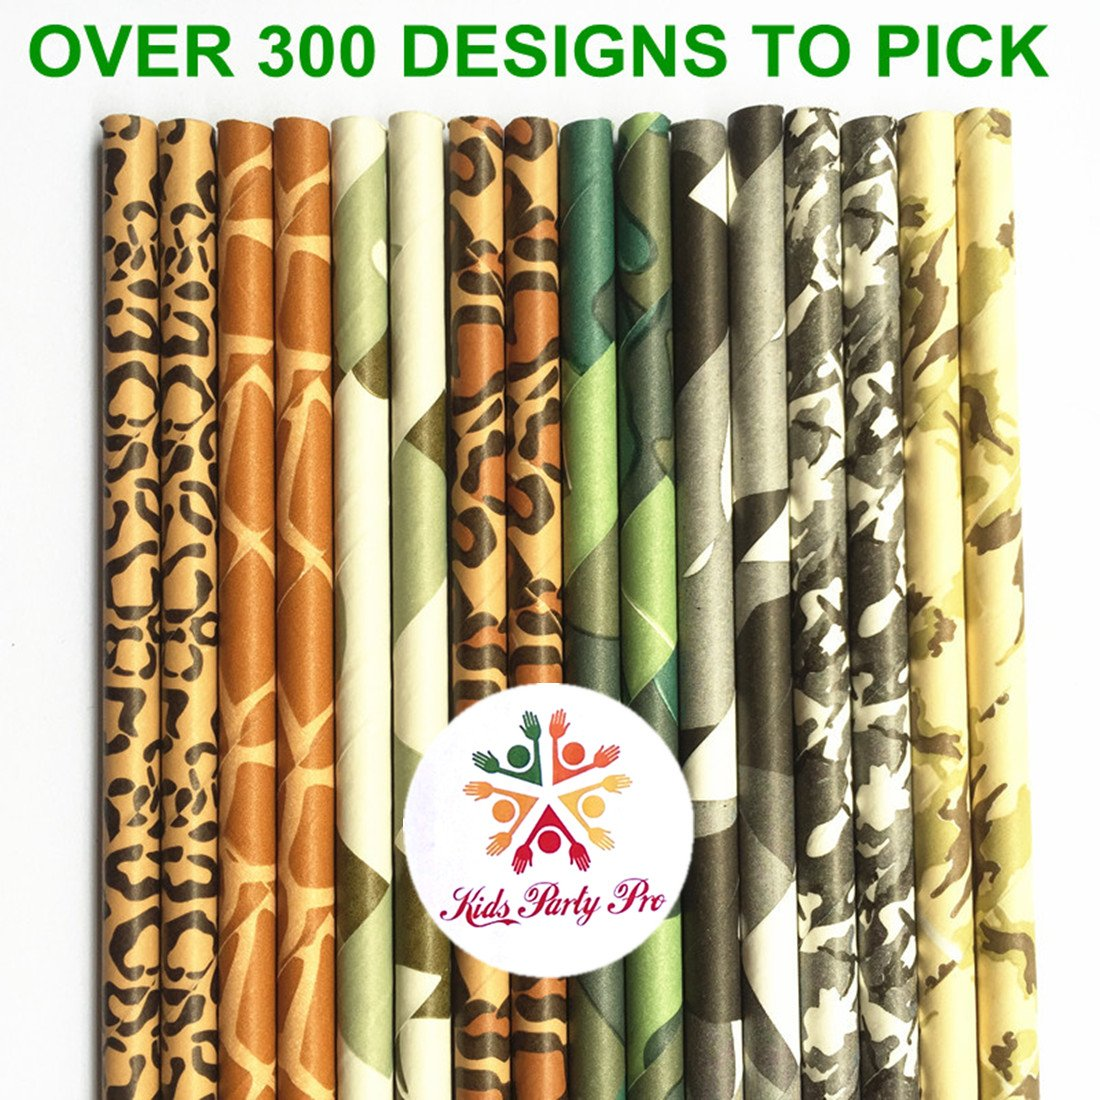 Free DHL Shipping Over 300 Designs to Choose 11000 Paper Straws Wholesale,Striped Polka Dot Chevron Plain Star Heart Damask Floral Animal Print Camouflage Paper Drinking Straws Bulk